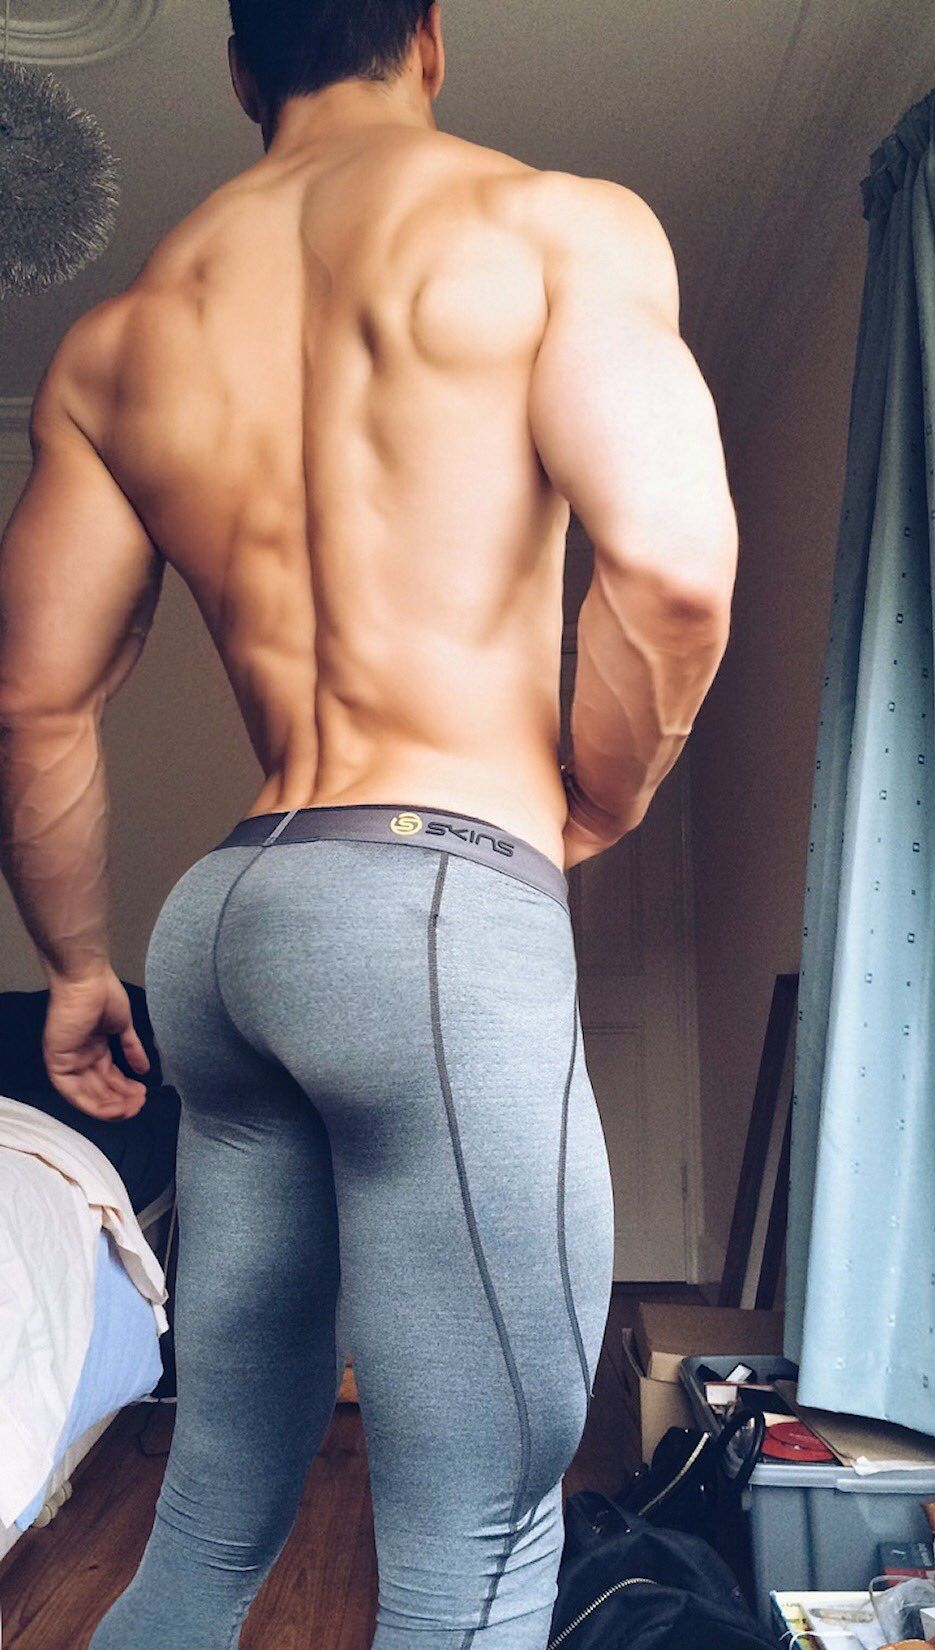 sexo gay hombres cancer anal saludable